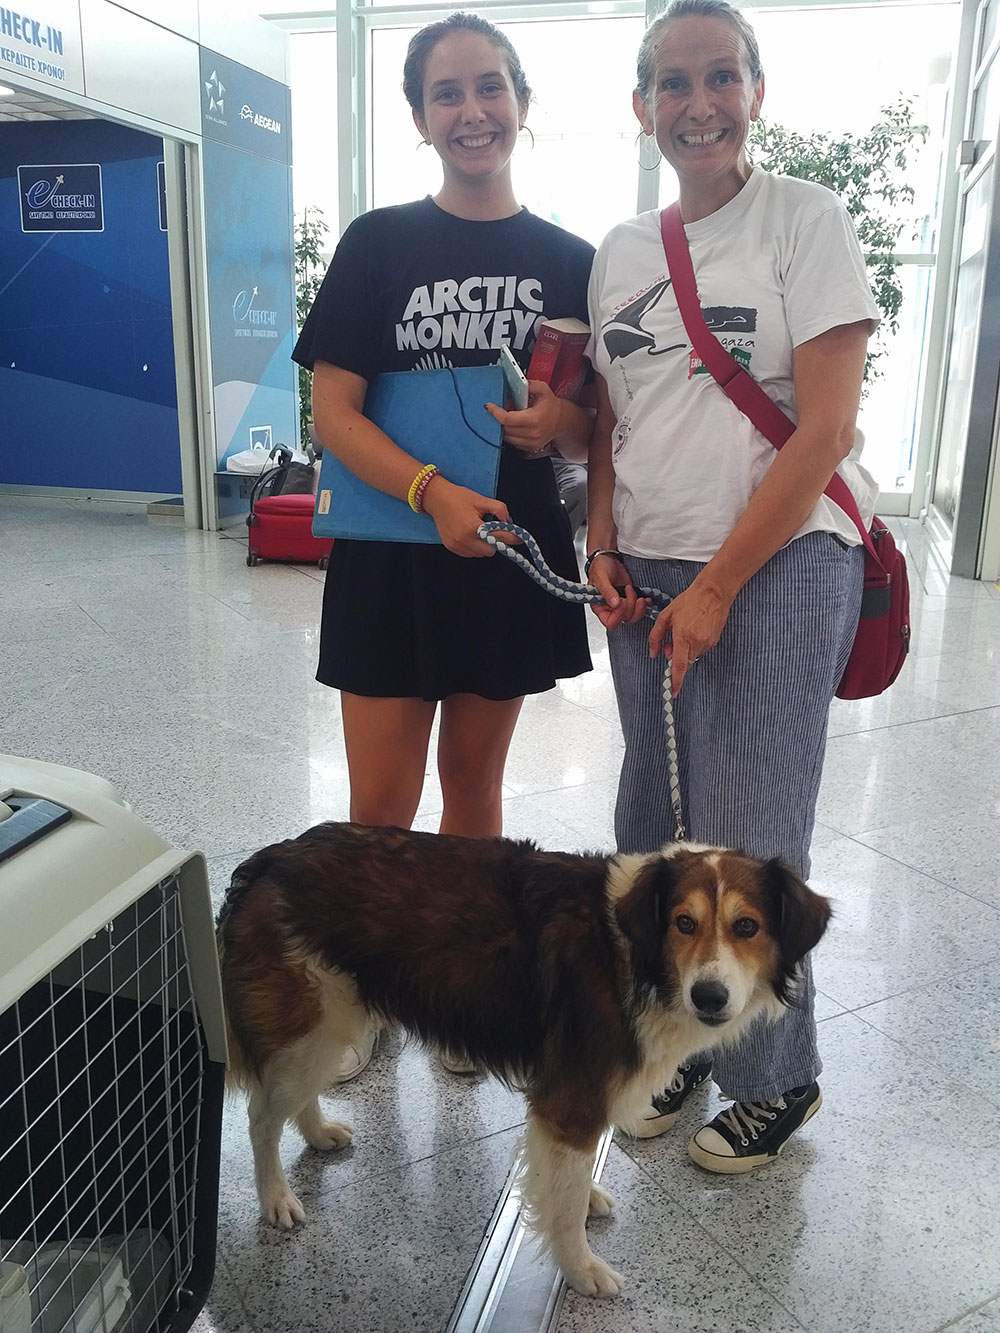 Hector was a last-minute addition to the trip. He belongs to Lee and her daughter, who will be following on shortly.